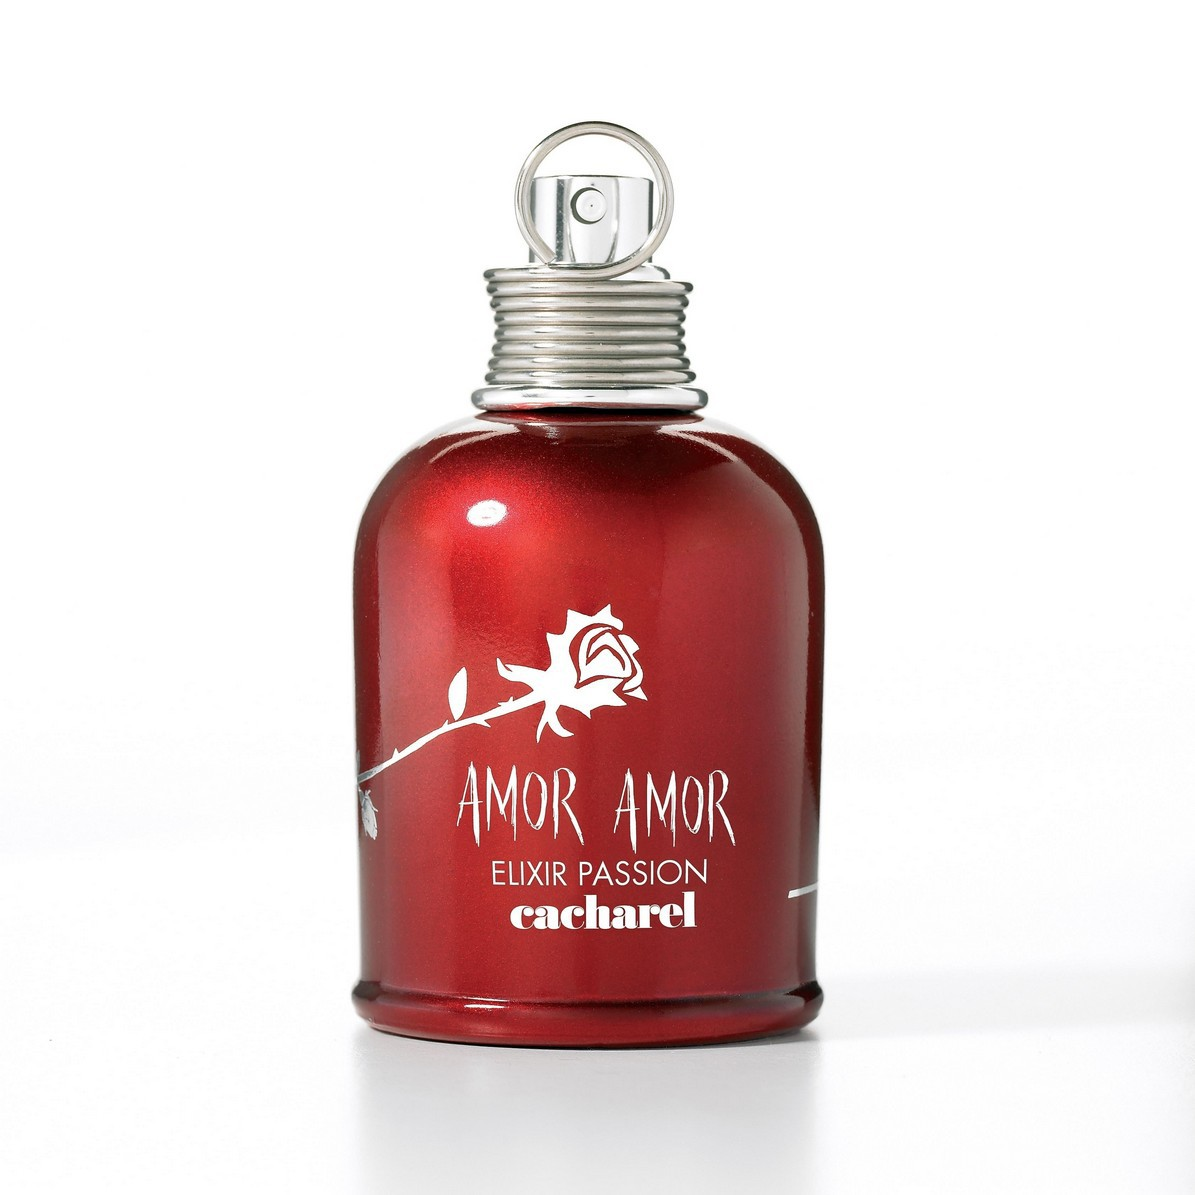 Cacharel Amor Amor Elixir Passion аромат для женщин